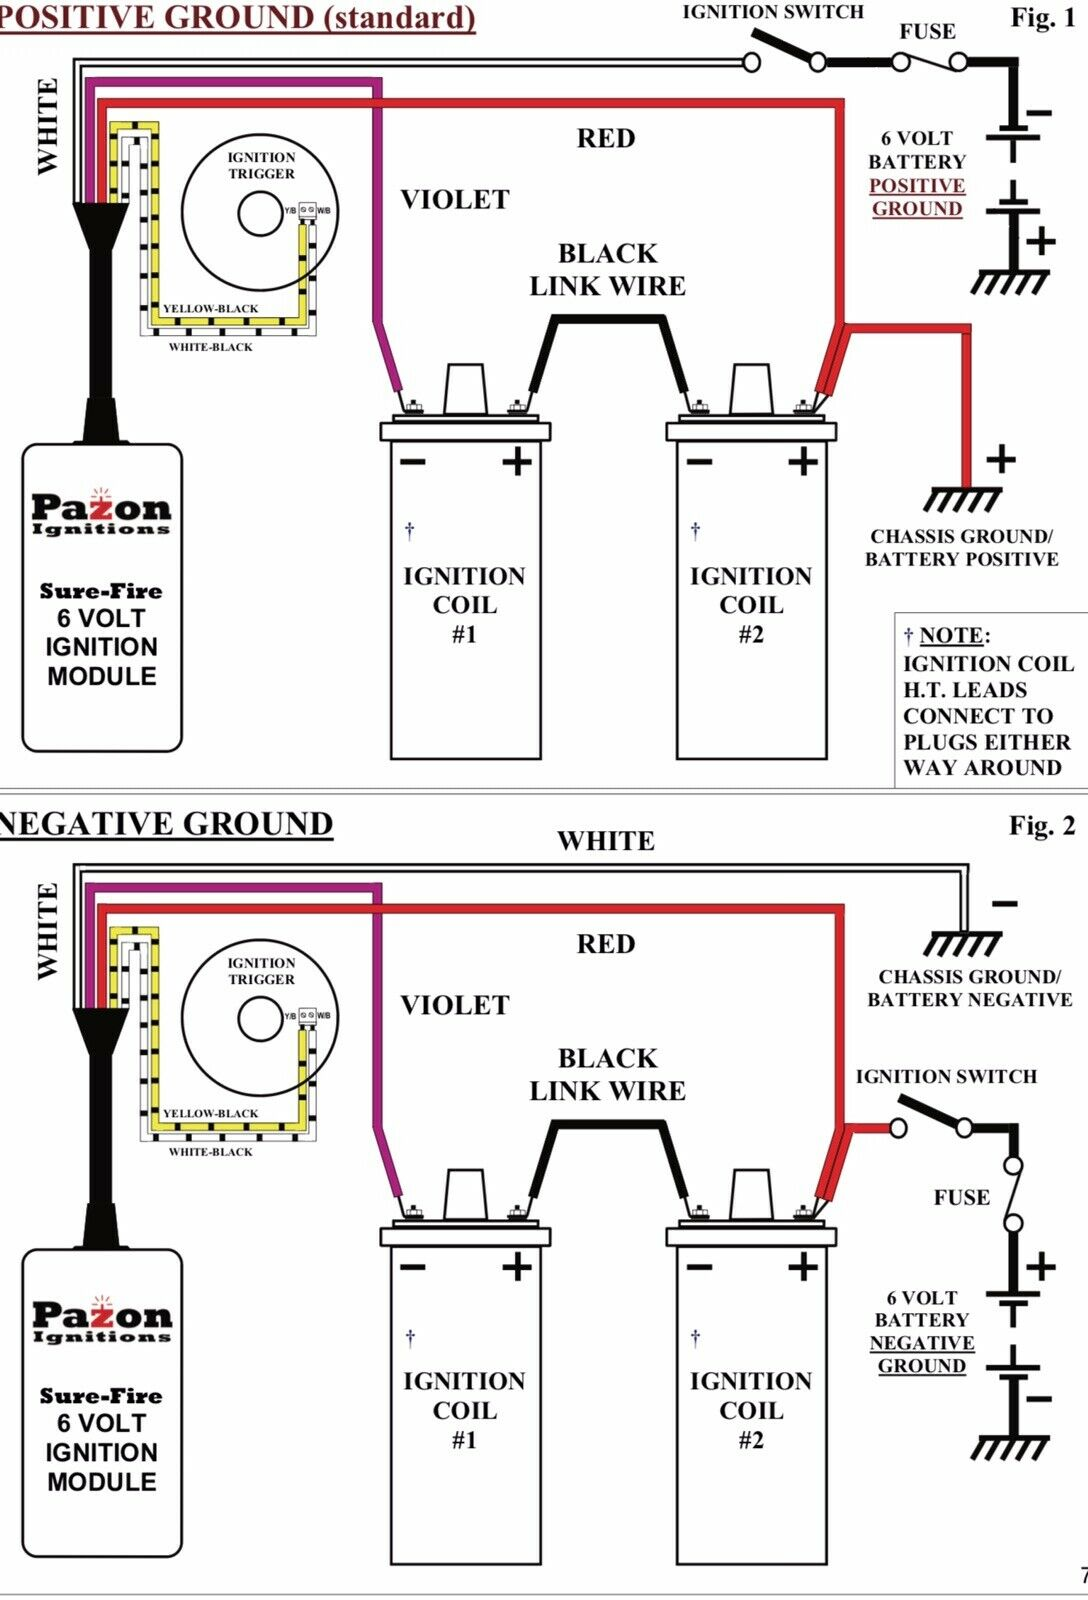 hight resolution of pazon wiring diagram wiring diagram general home pazon electronic ignition wiring diagram pazon wiring diagram